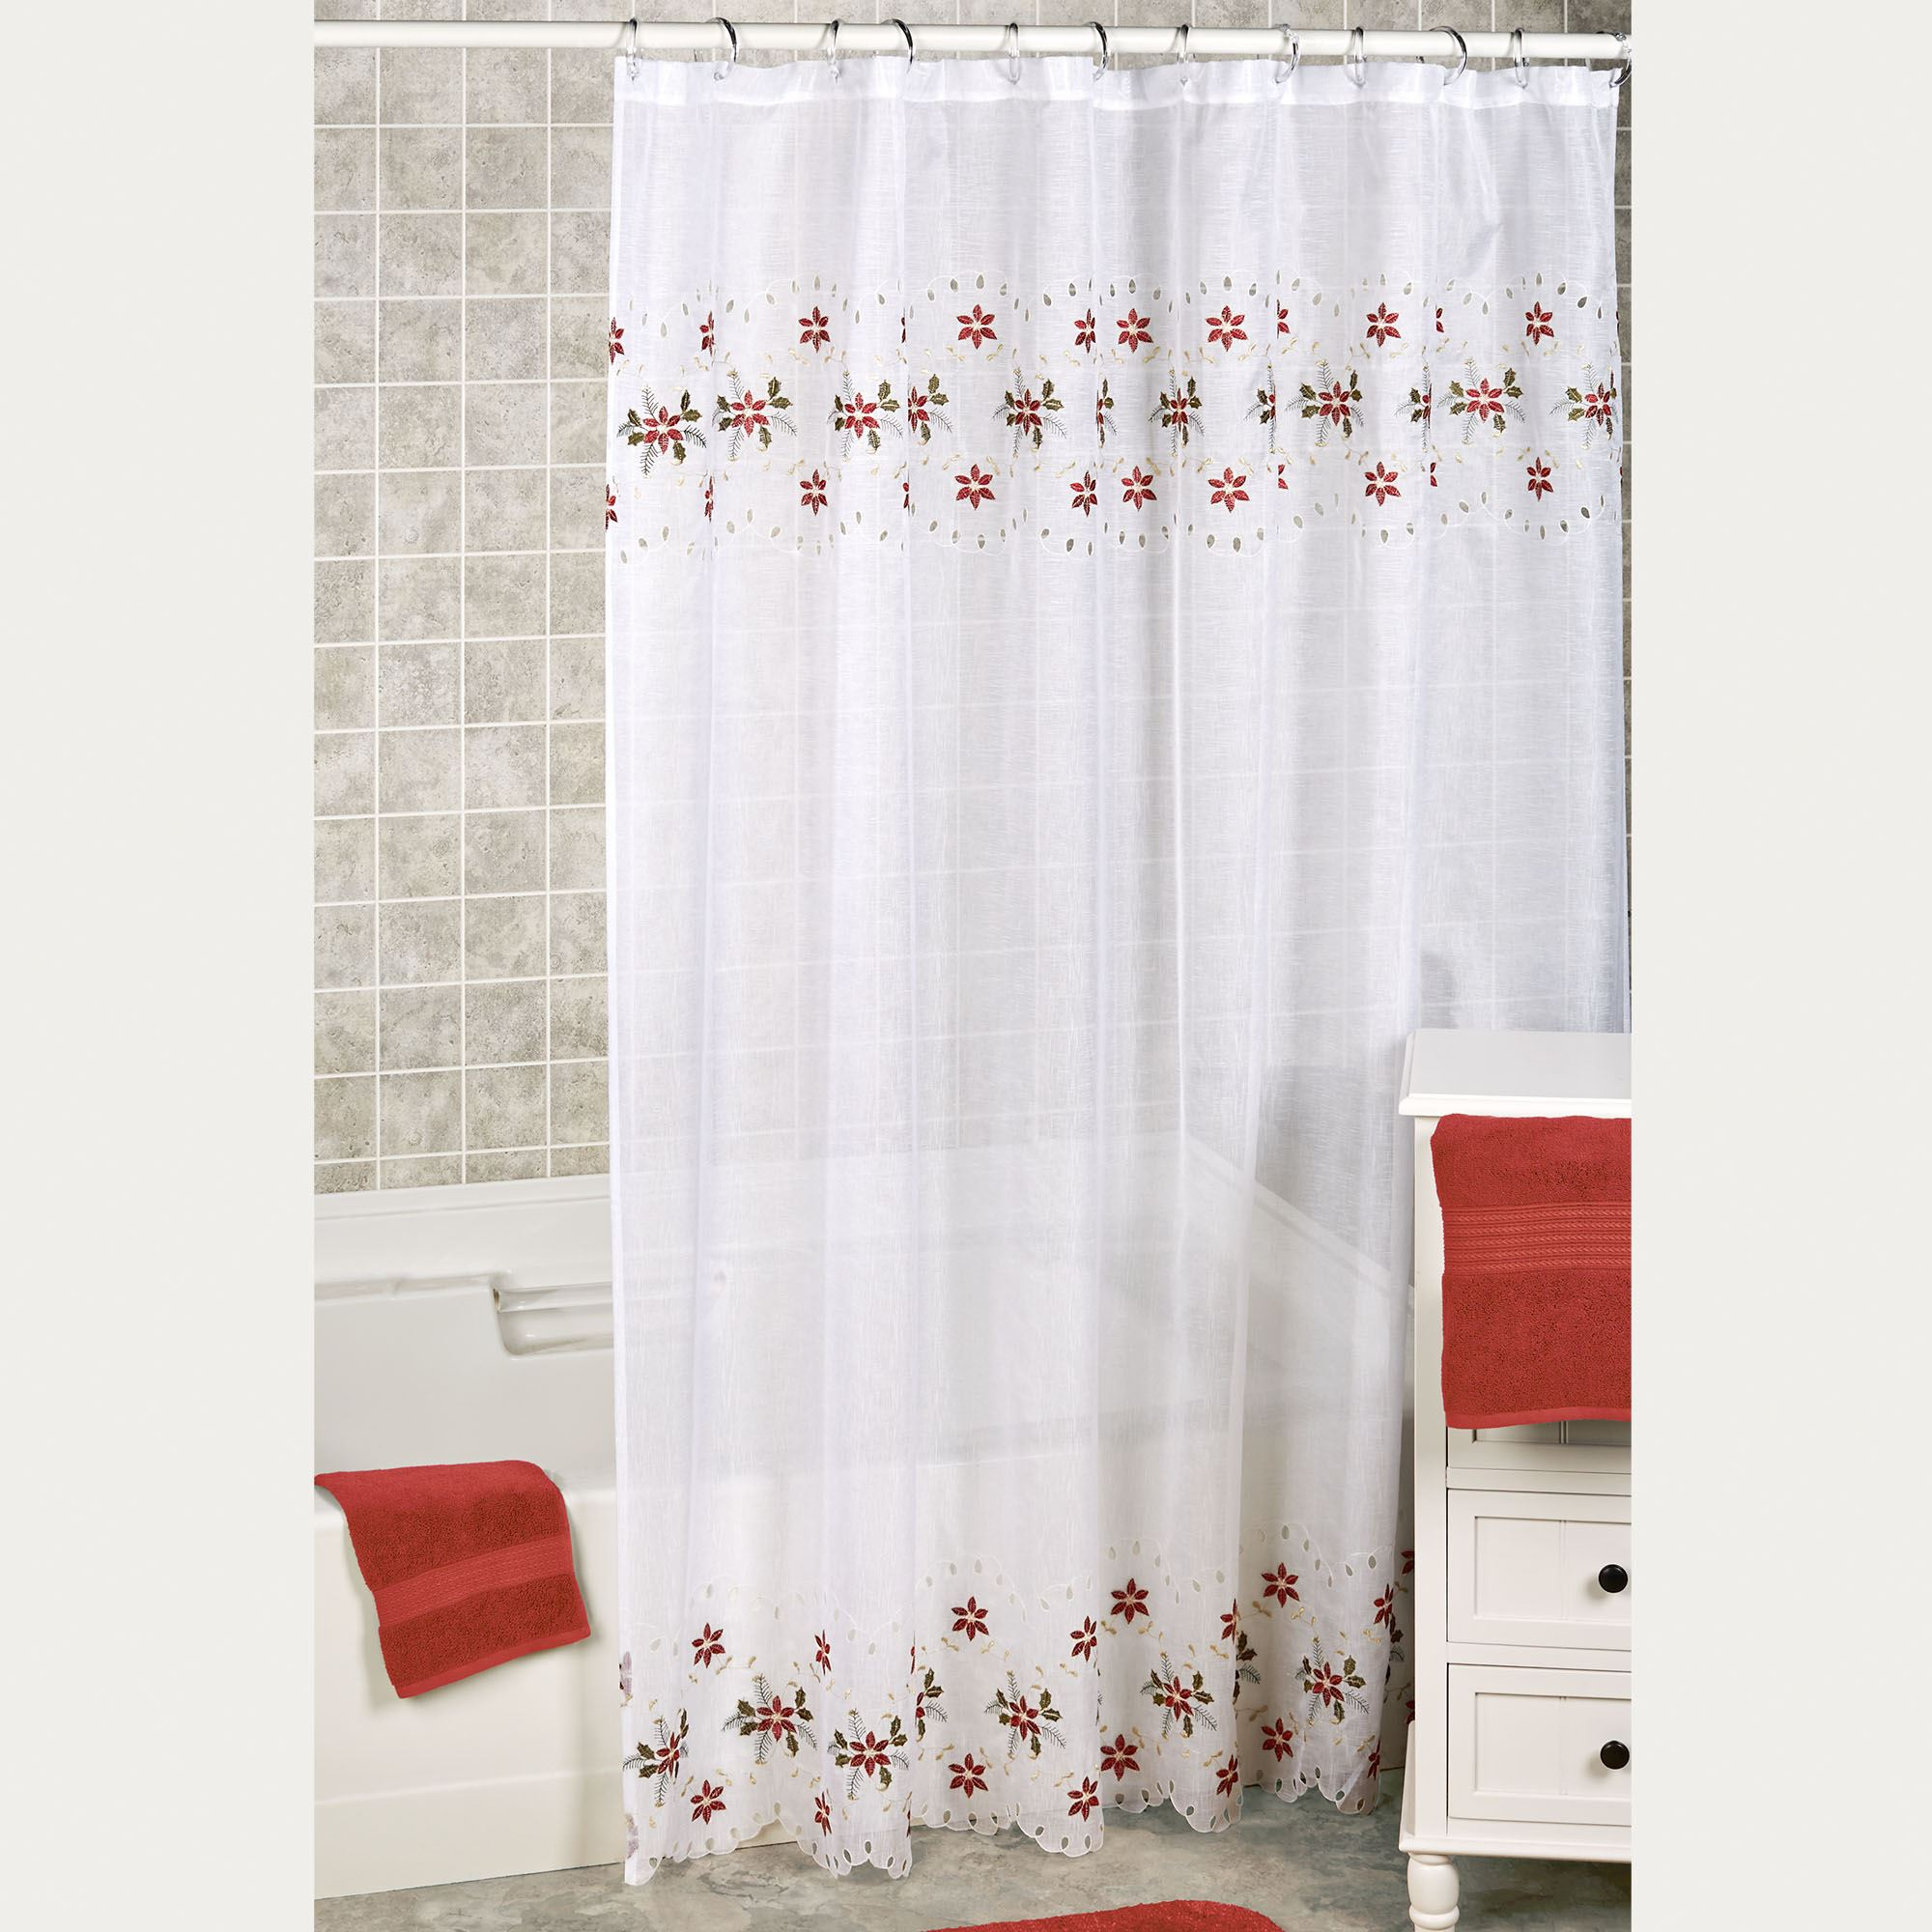 Poinsettia Semi Sheer Cutwork Holiday Shower Curtain